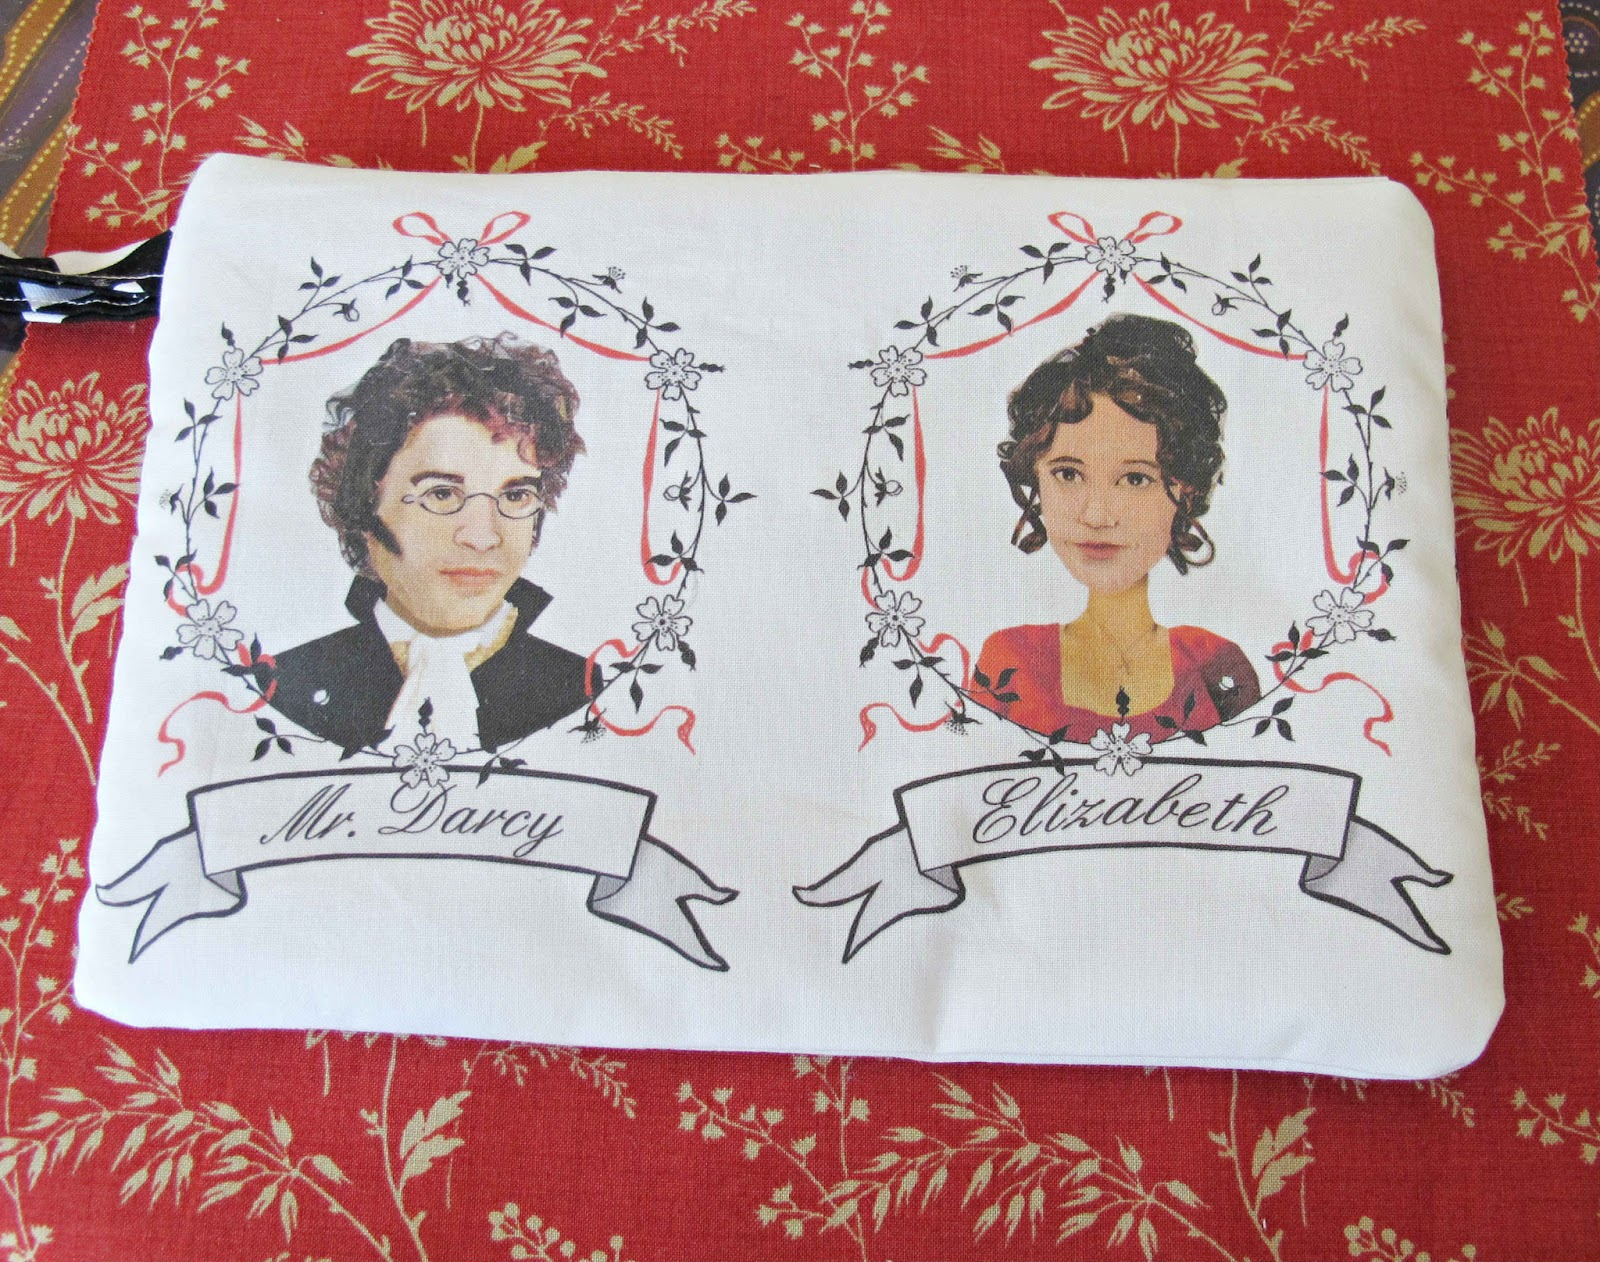 image mr darcy wristlet purse pride and prejudice elizabeth bennet jane austen spoonflower fabric